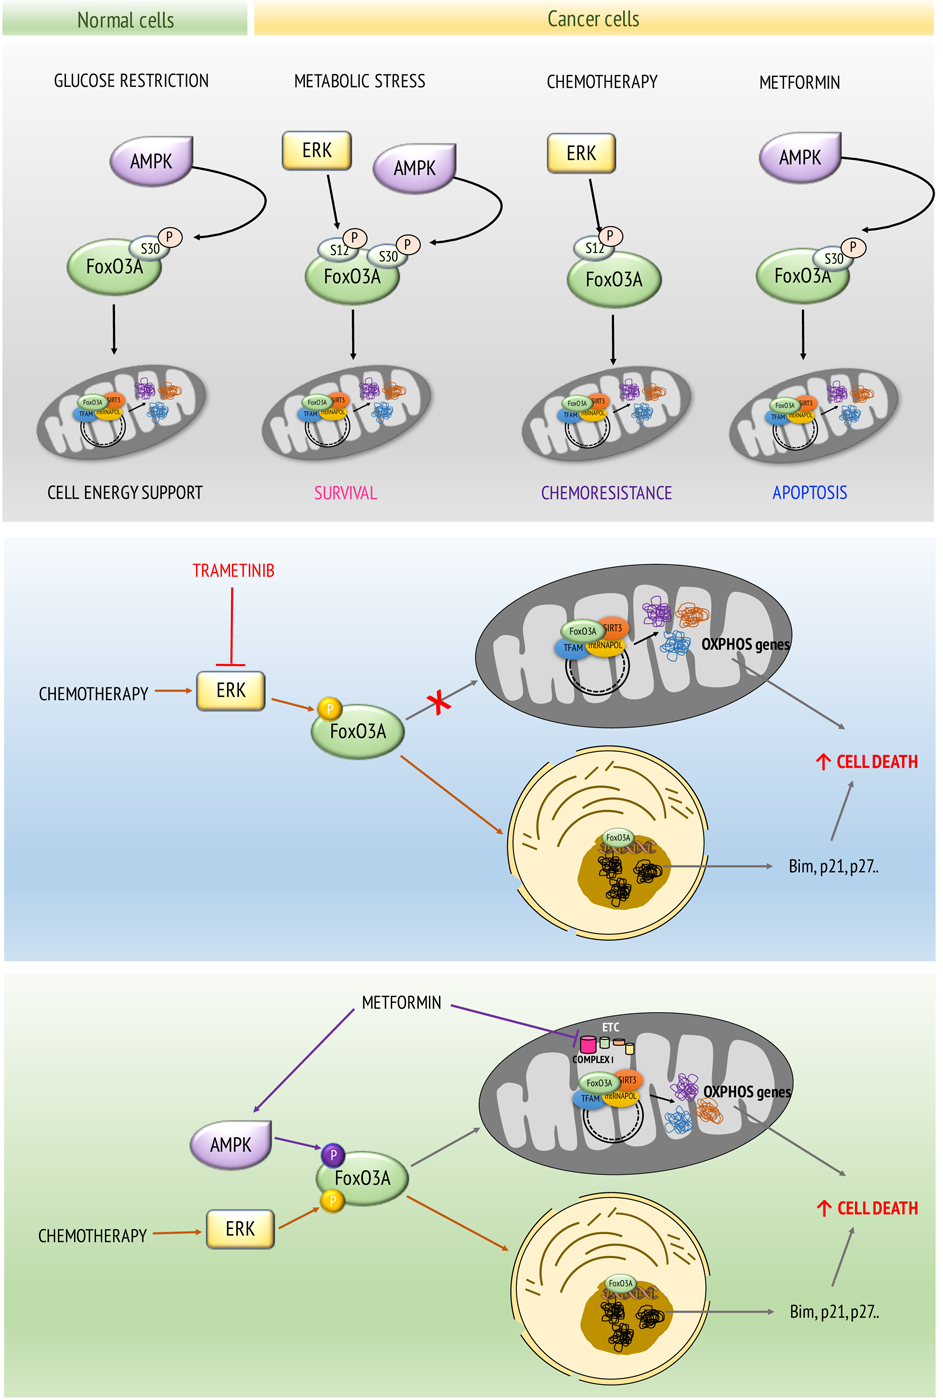 Uncoupling FoxO3A Mitochondrial and Nuclear Functions in Cancer Cells Undergoing Metabolic Stress and Chemotherapy - Medicine Innovates